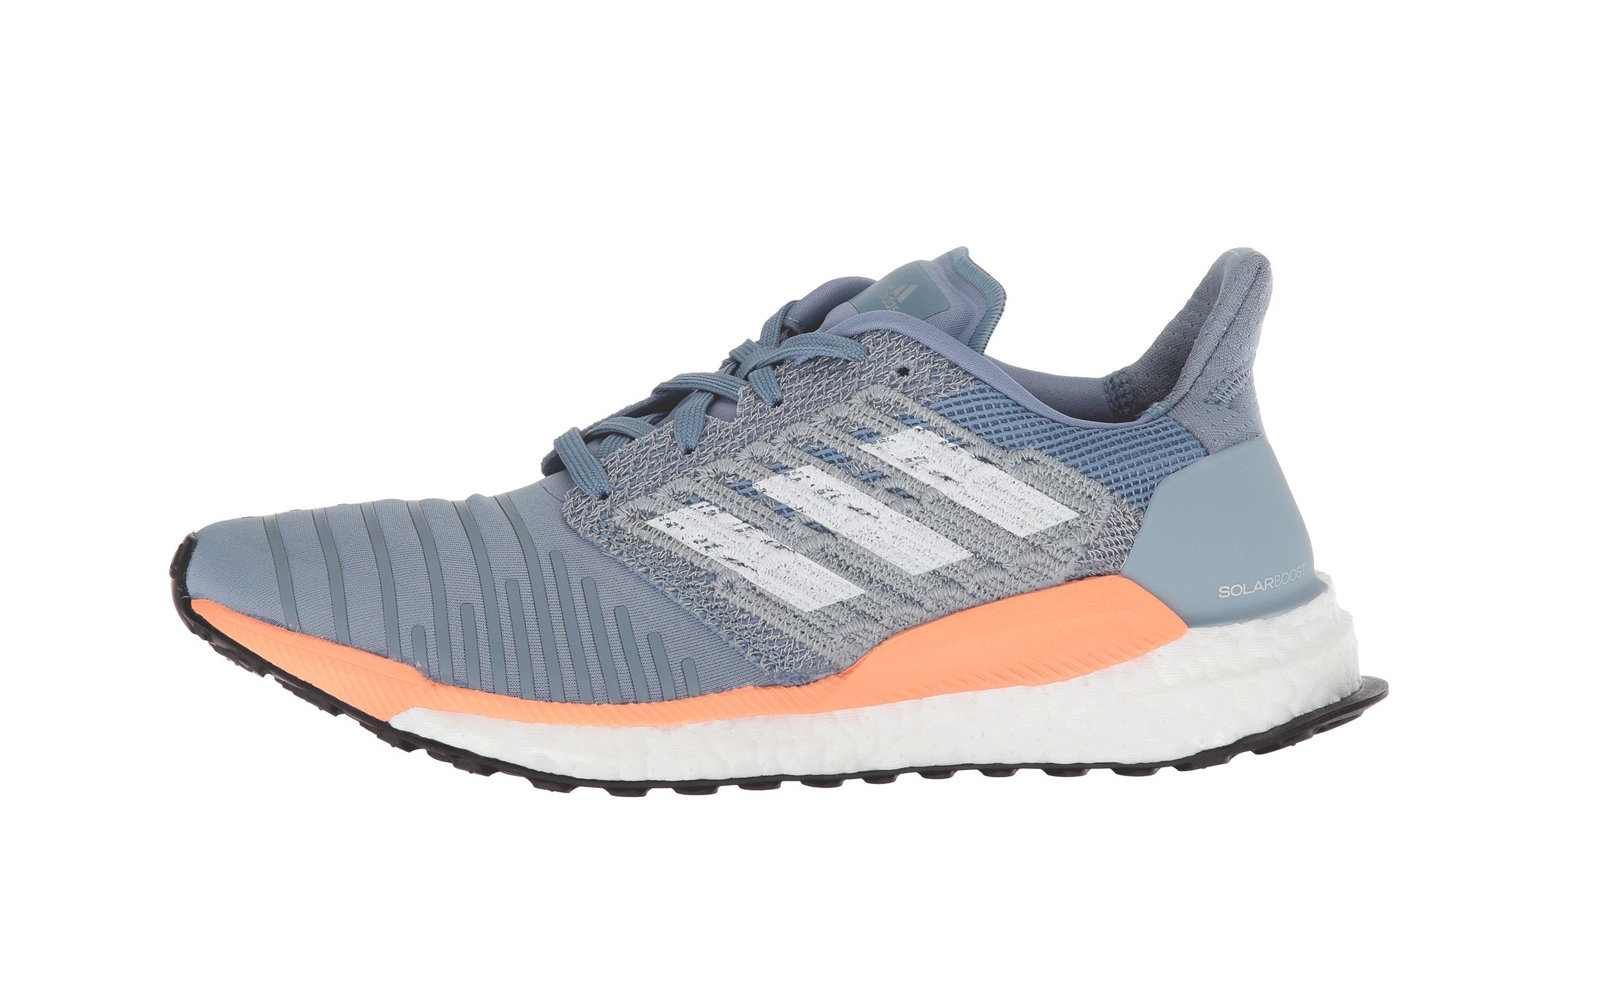 Zappos-adidas-running-solar-boost-sneaker-SNEAKERSALE0119